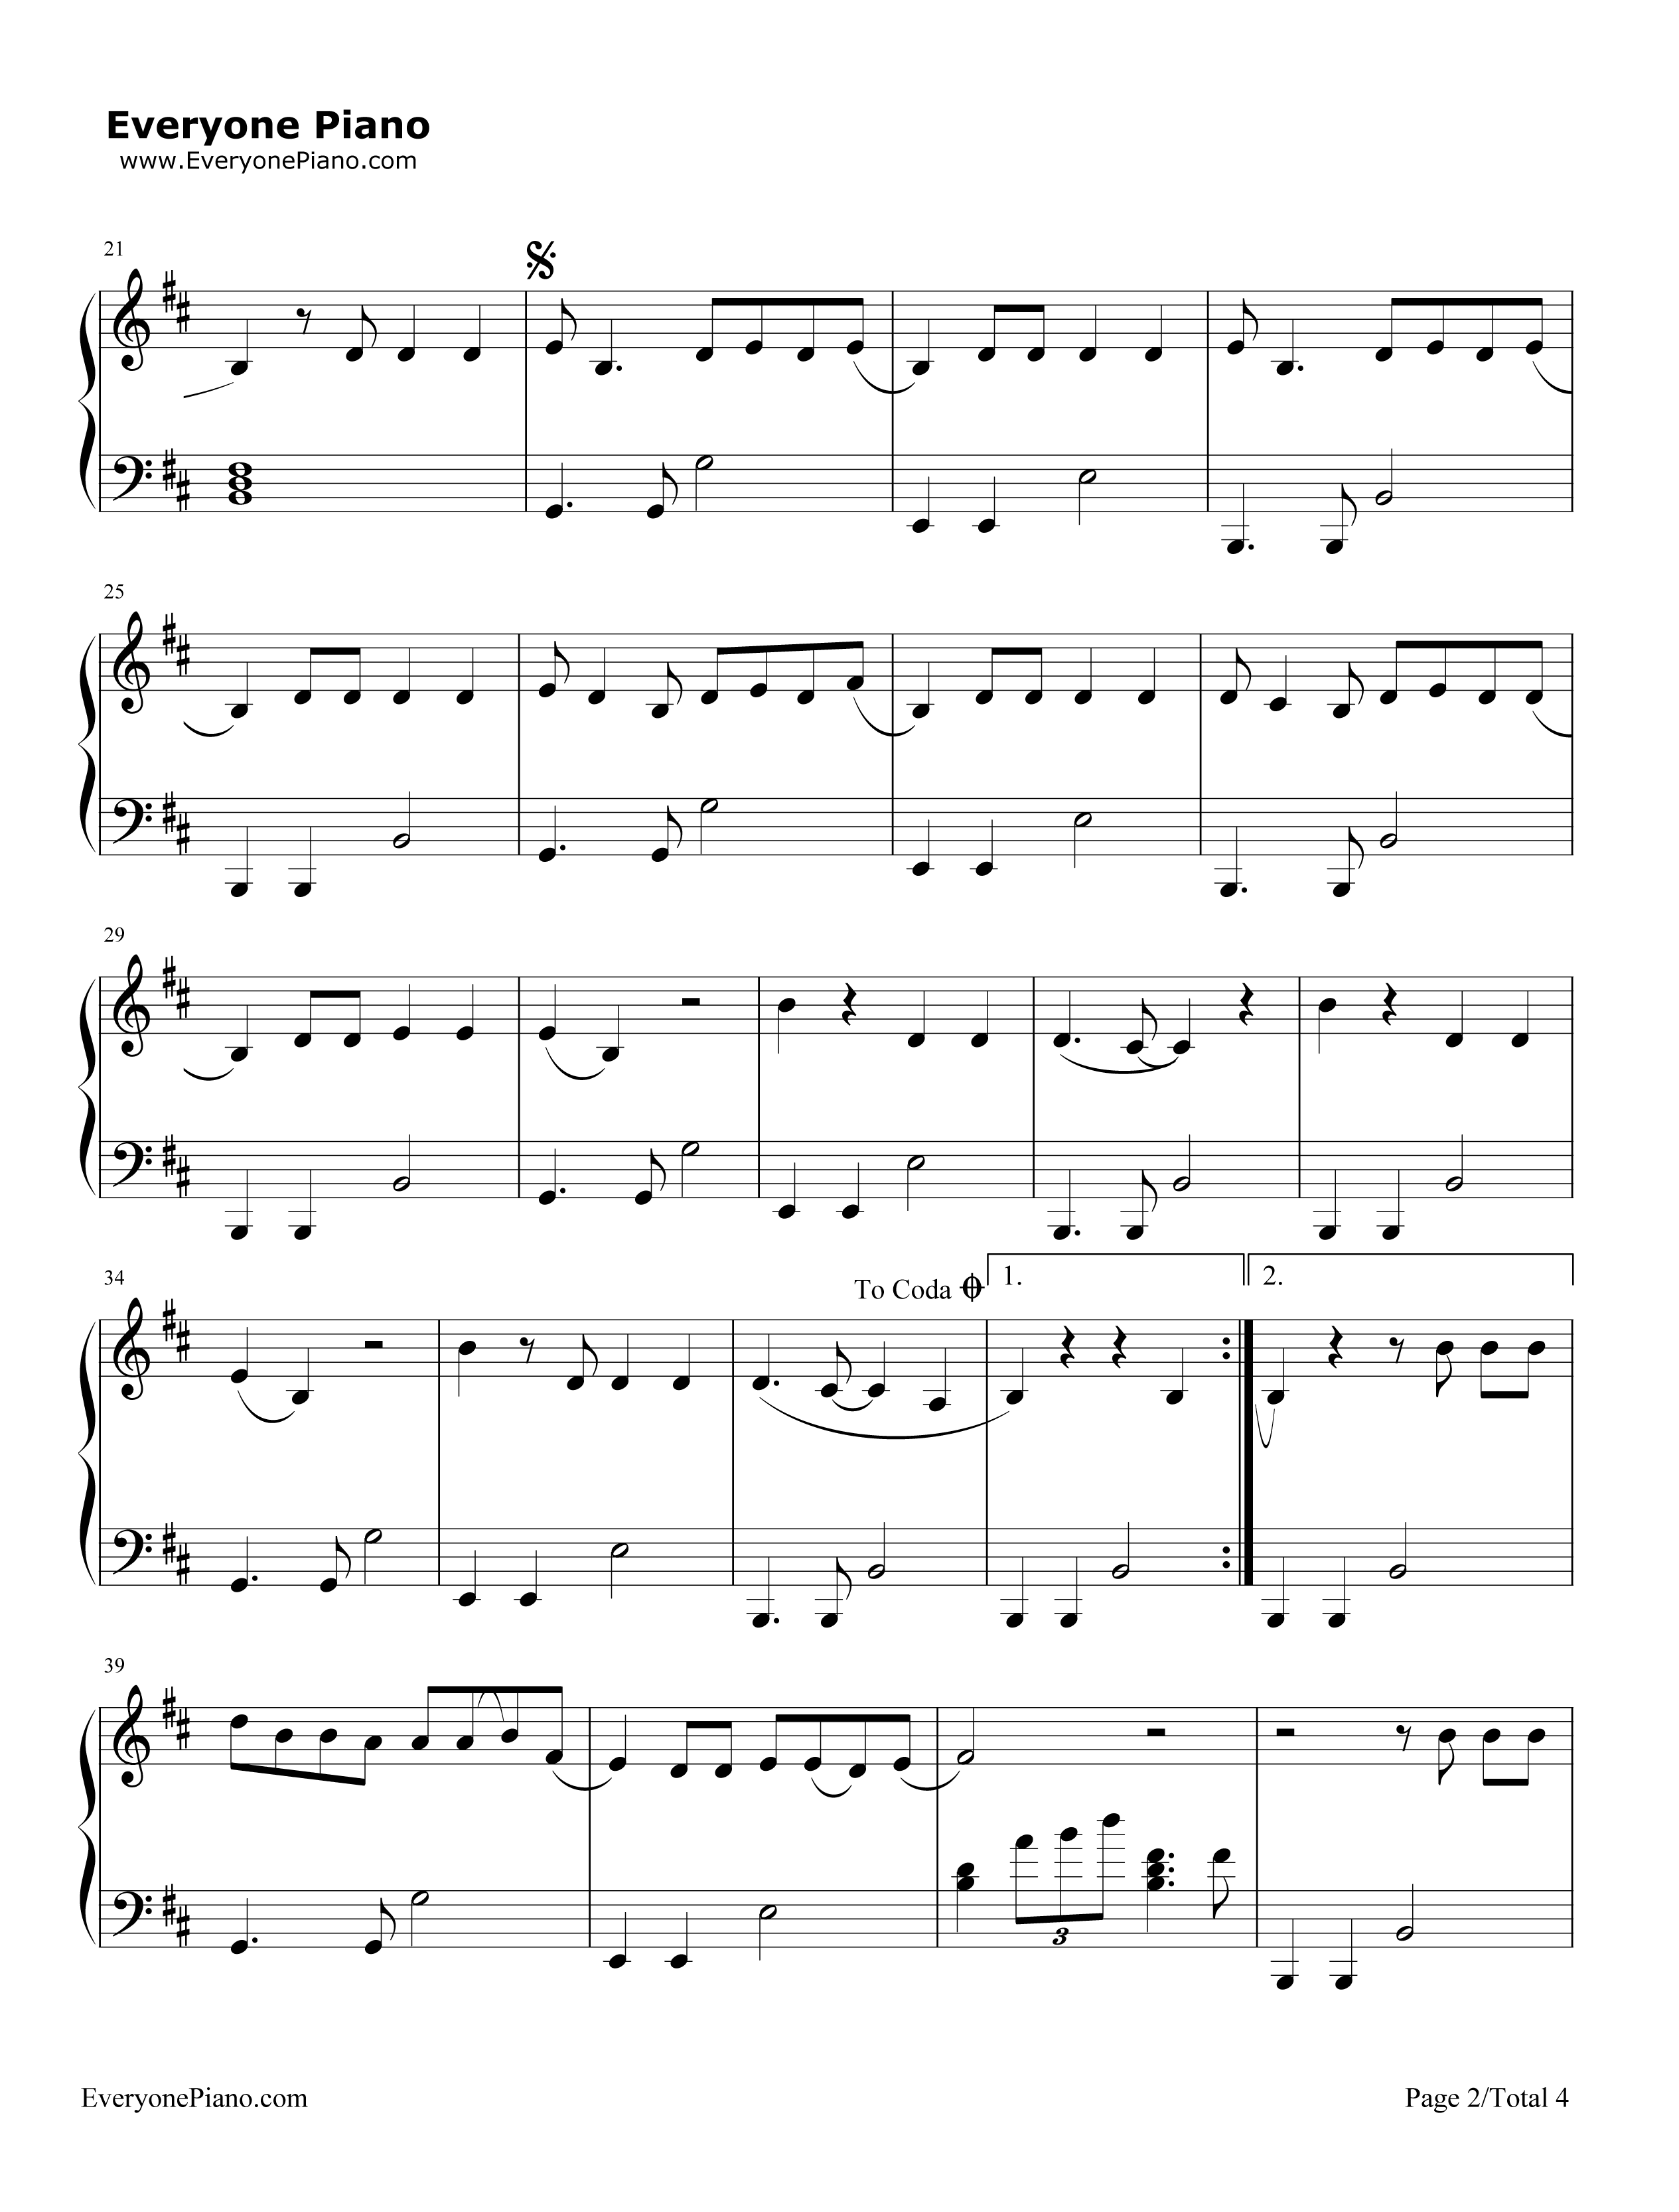 Art Deco Lana Del Rey Stave Preview 2 Free Piano Sheet